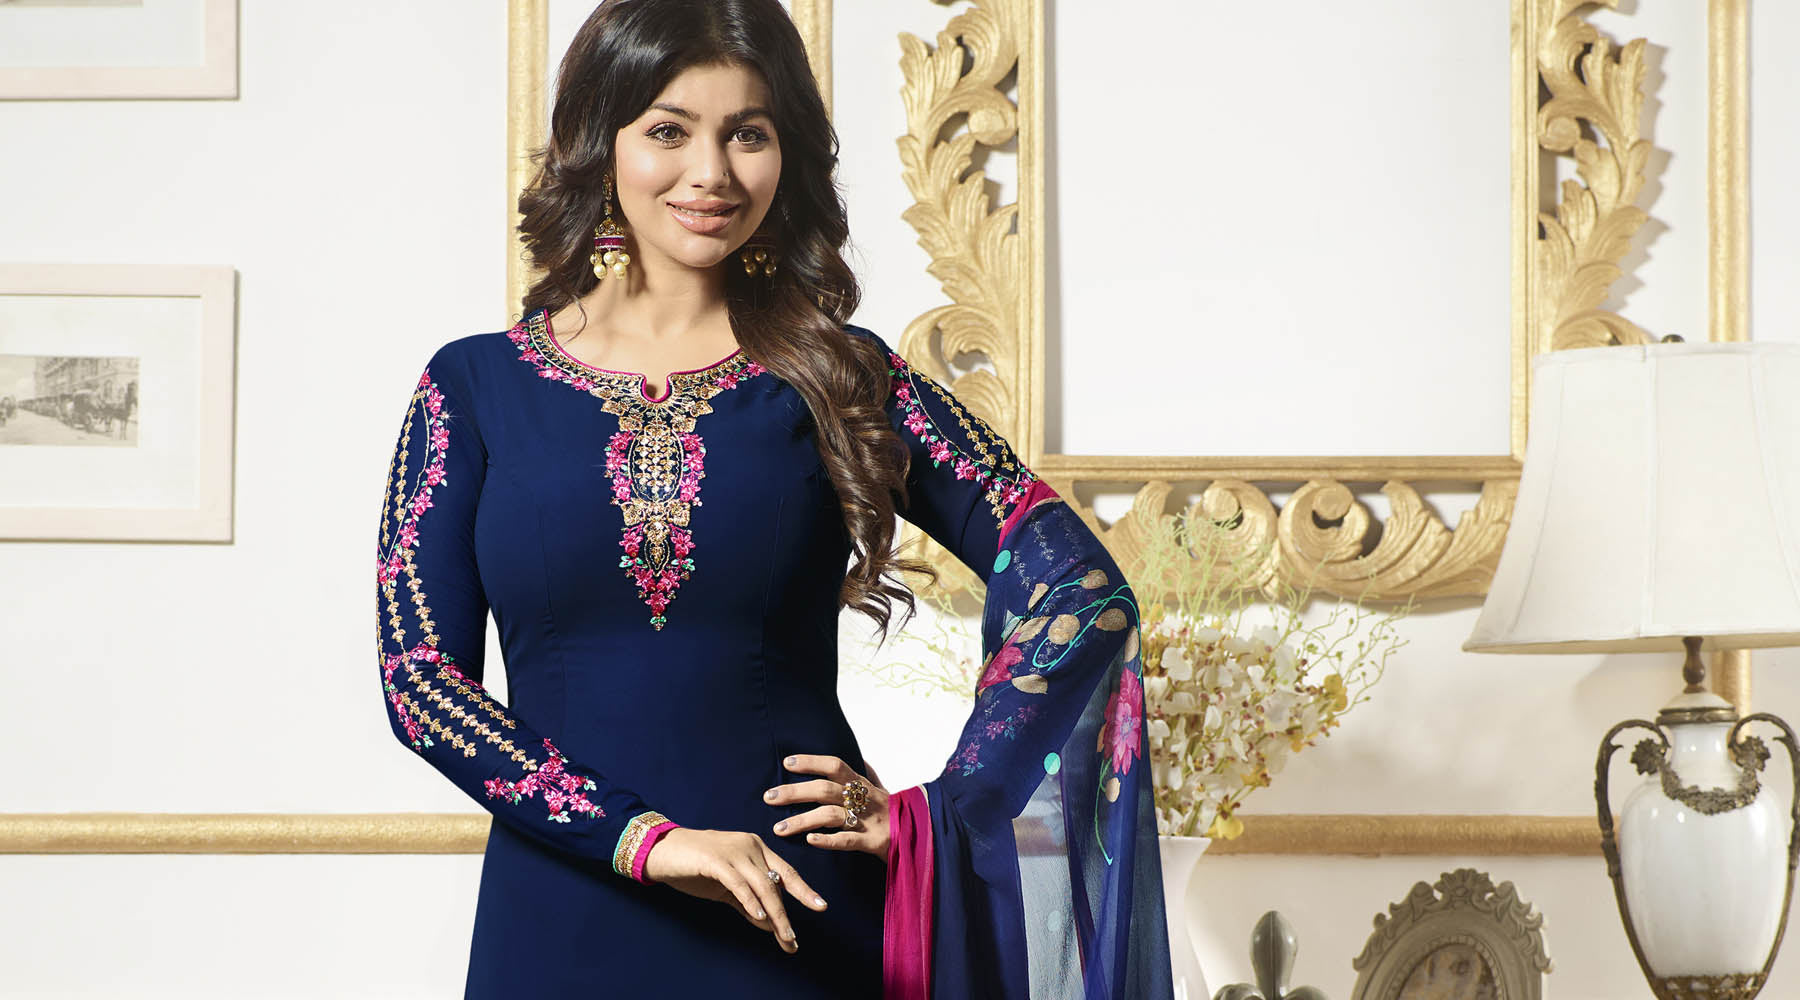 Salwar Kameez Online Shopping - Buy Designer Salwar Kameez, Indian Salwar Suits, Wedding Salwar Kameez, Bridal Salwar Suit Collection, Anarkali Dresses, Punjabi Suits, Churidar Suits, Ladies Dress Materials, Women Salwar Suits and More at Variation.